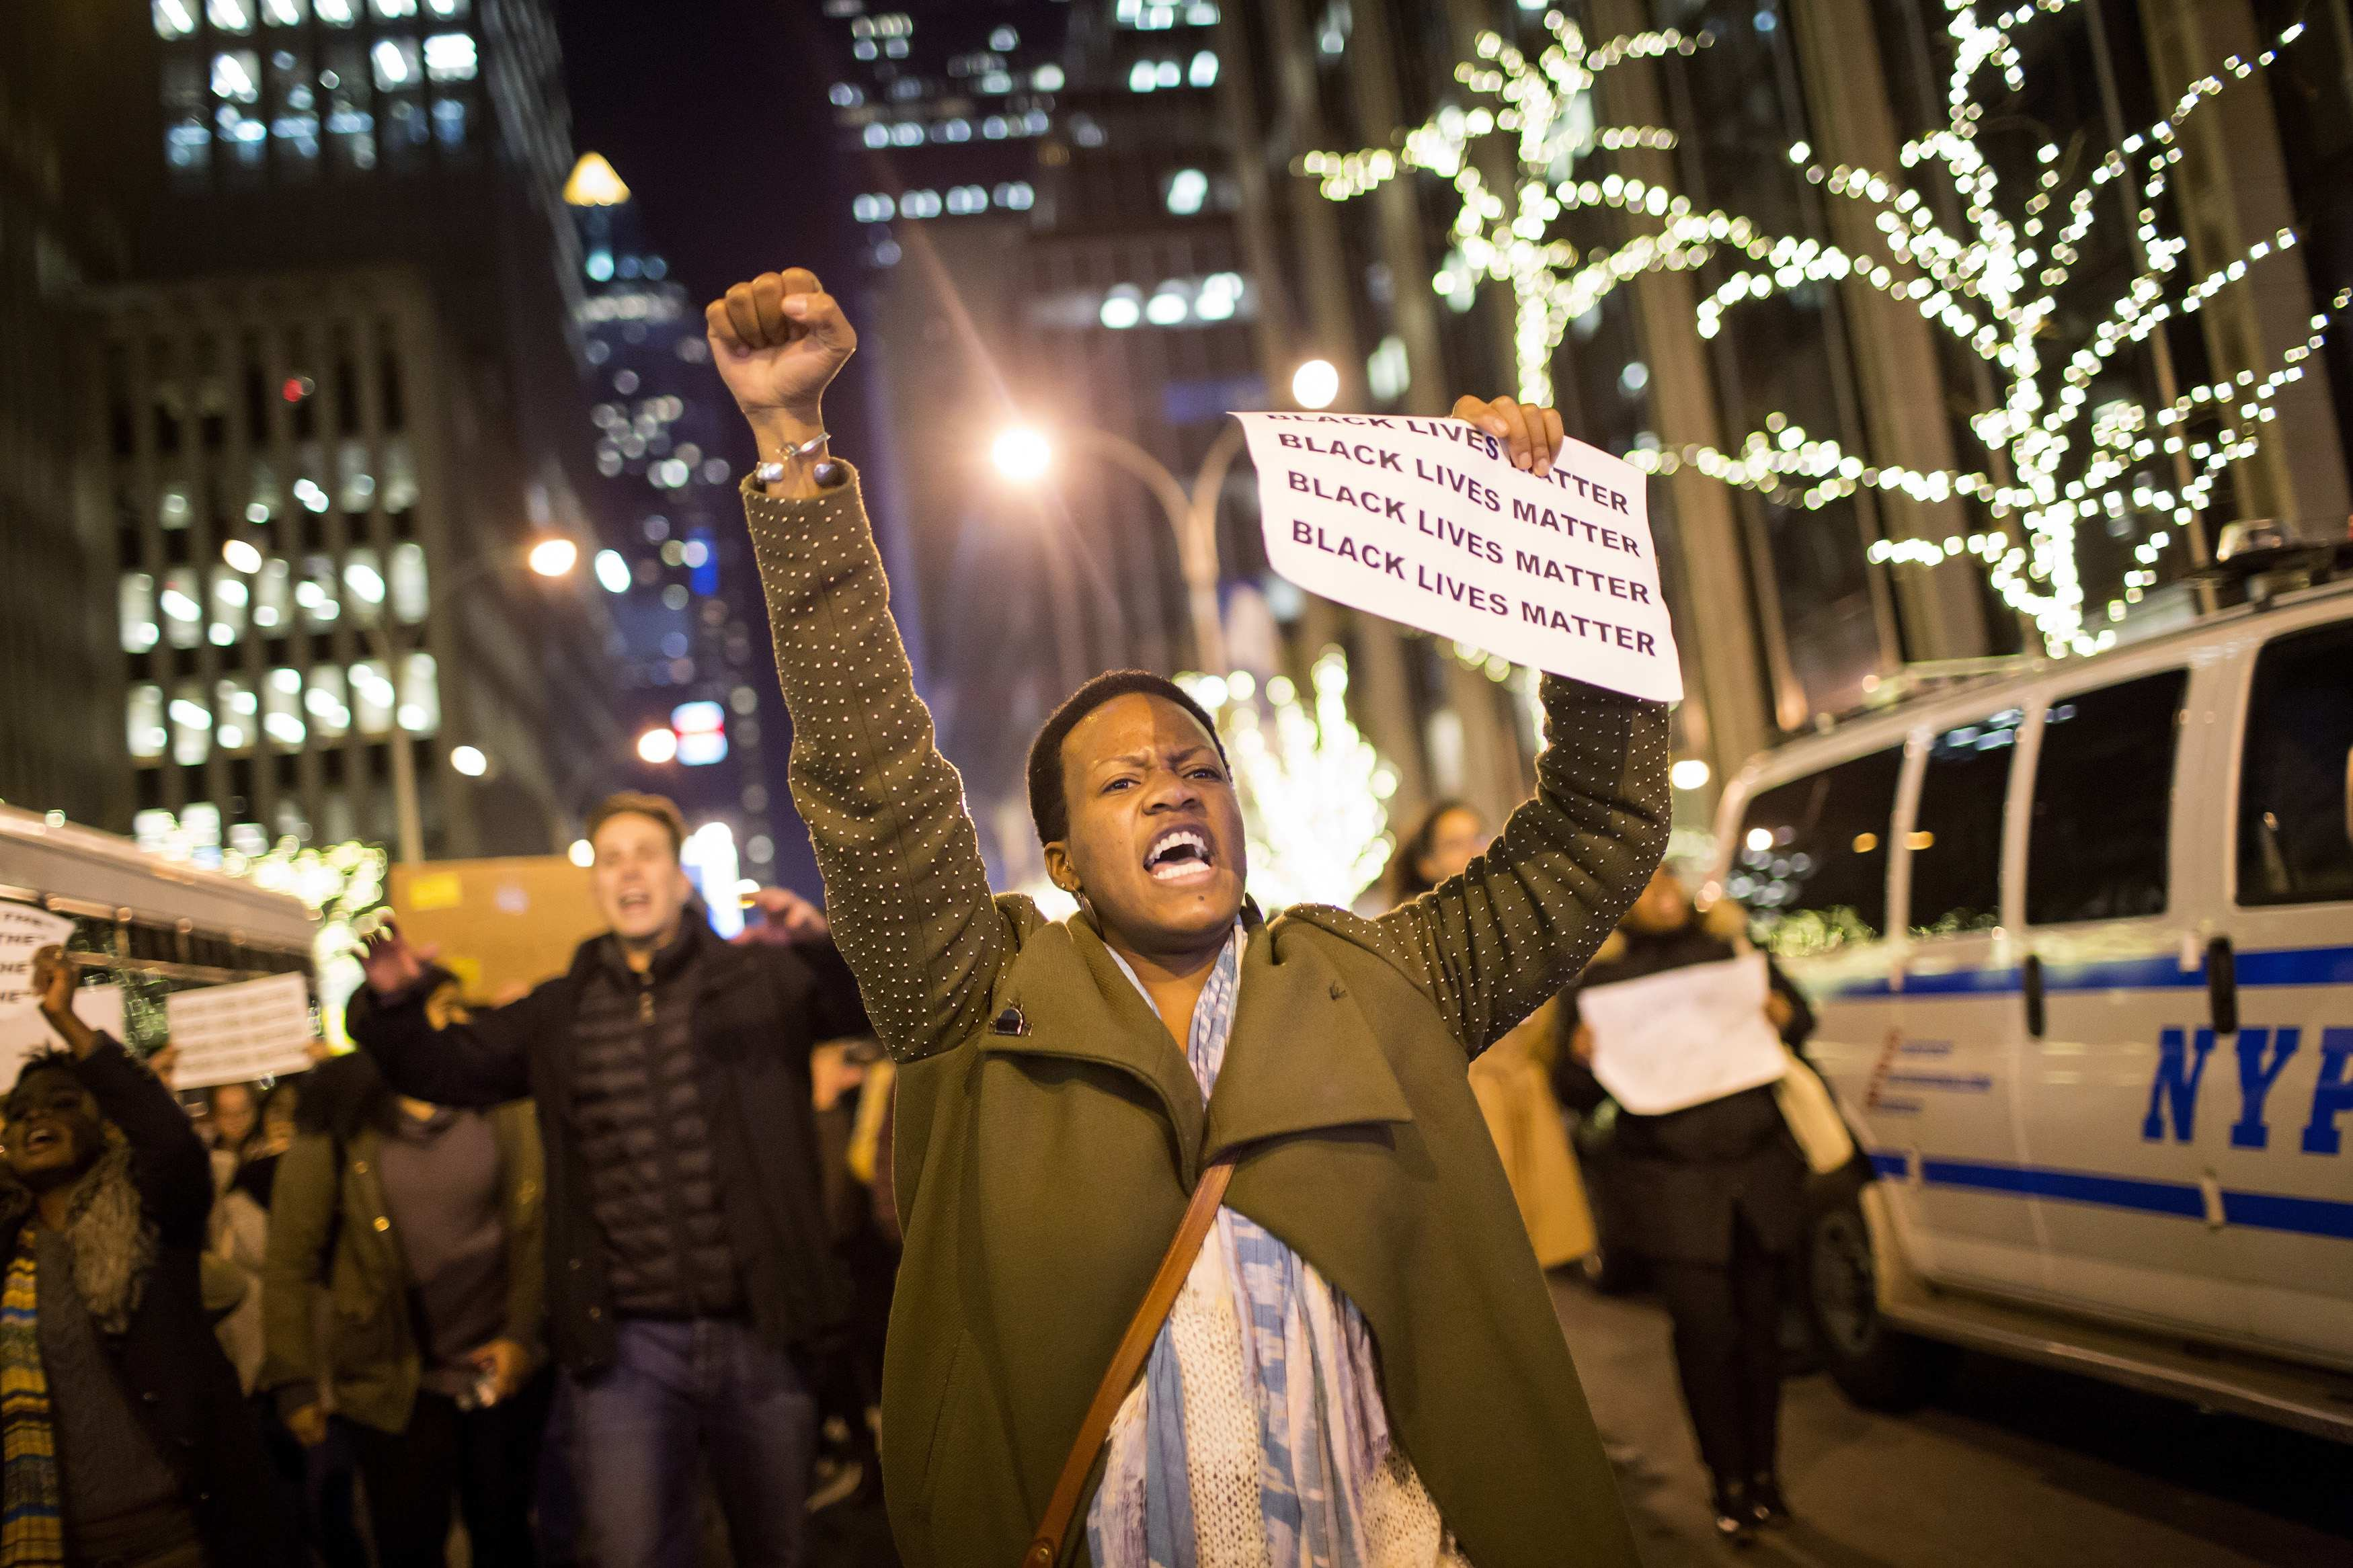 People take part in a protest against the grand jury decision on the death of Eric Garner in midtown Manhattan in New York on Dec. 3, 2014.